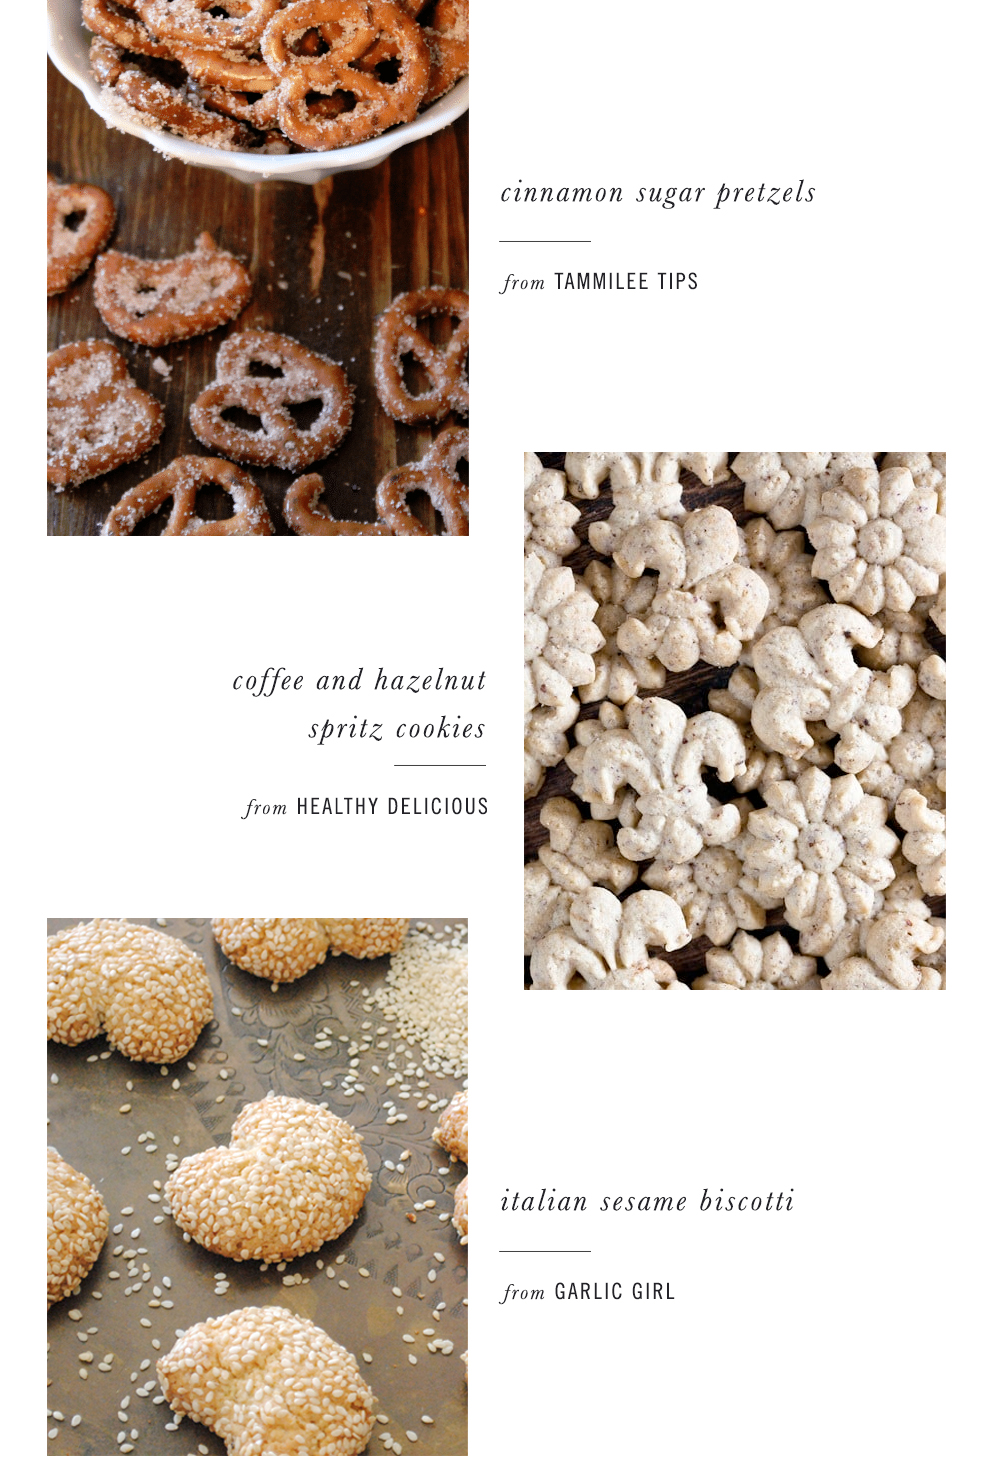 merry & sweet - holiday cookie & treat recipe roundup